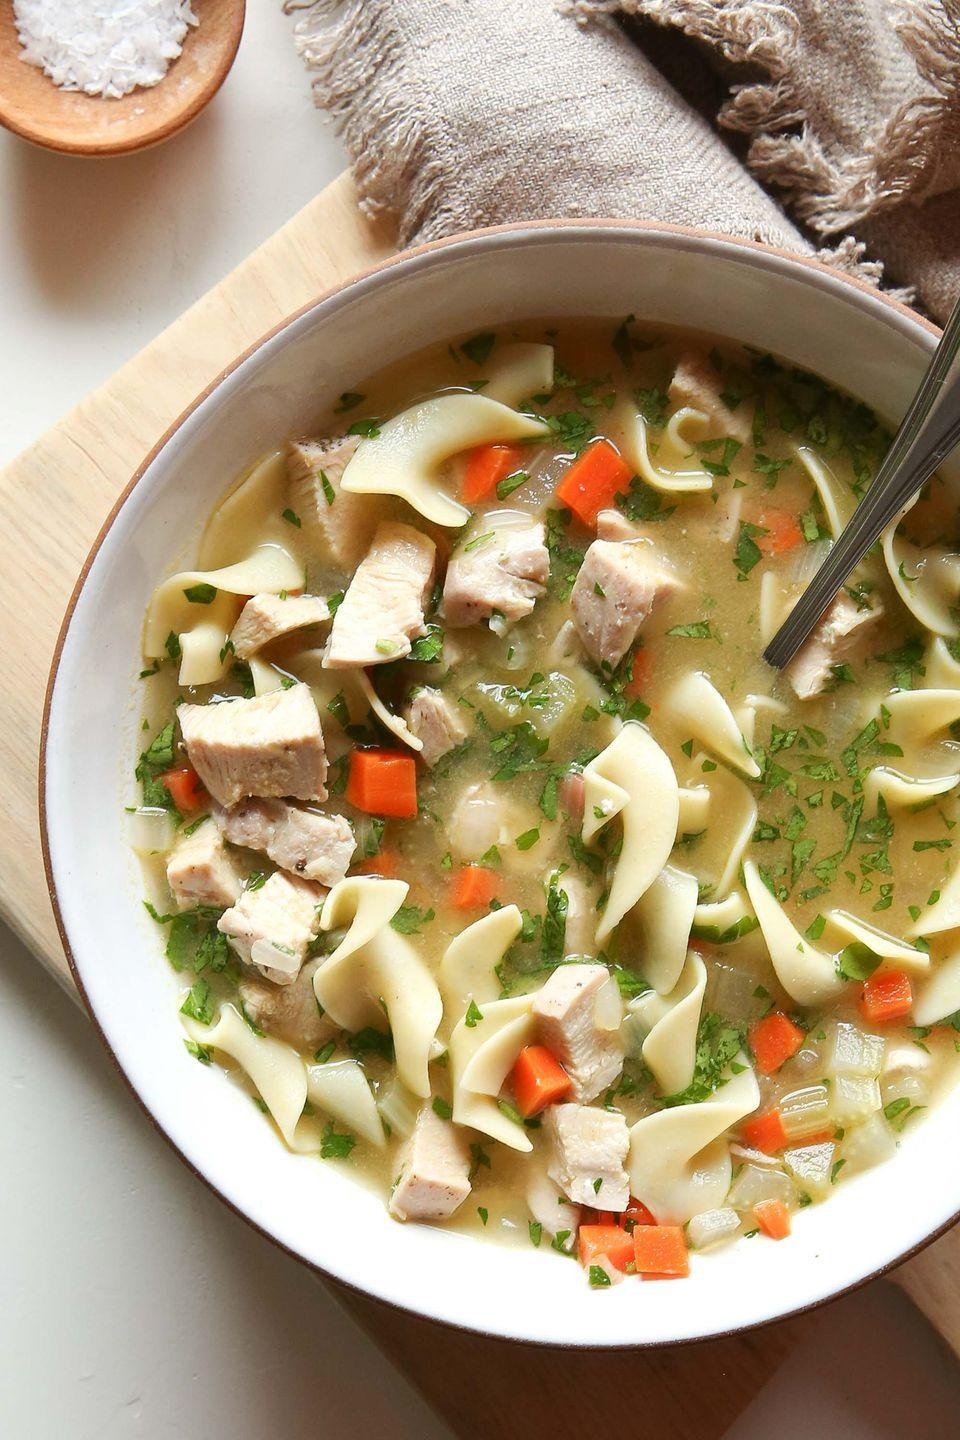 """<p>We're never going back to Campbell's.</p><p>Get the recipe from <a href=""""https://www.delish.com/cooking/recipe-ideas/recipes/a51338/homemade-chicken-noodle-soup-recipe/"""" rel=""""nofollow noopener"""" target=""""_blank"""" data-ylk=""""slk:Delish"""" class=""""link rapid-noclick-resp"""">Delish</a>. </p>"""